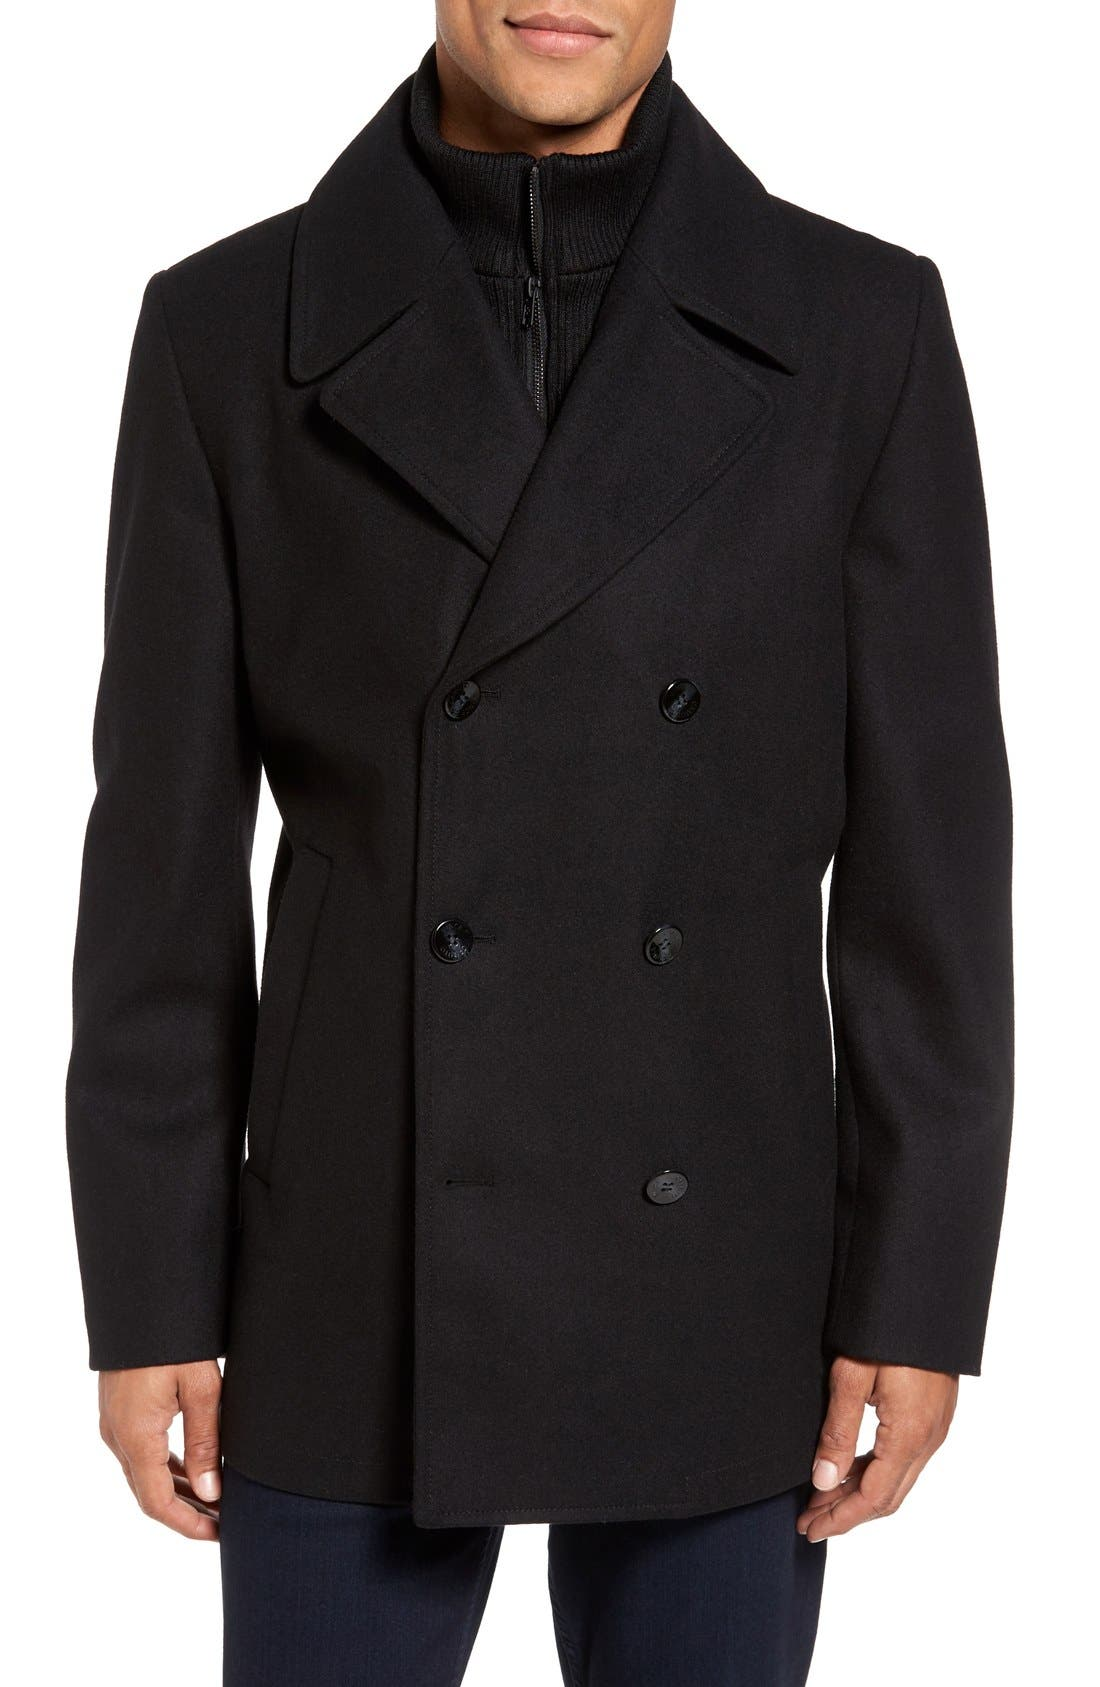 Dock Peacoat,                             Main thumbnail 1, color,                             Black